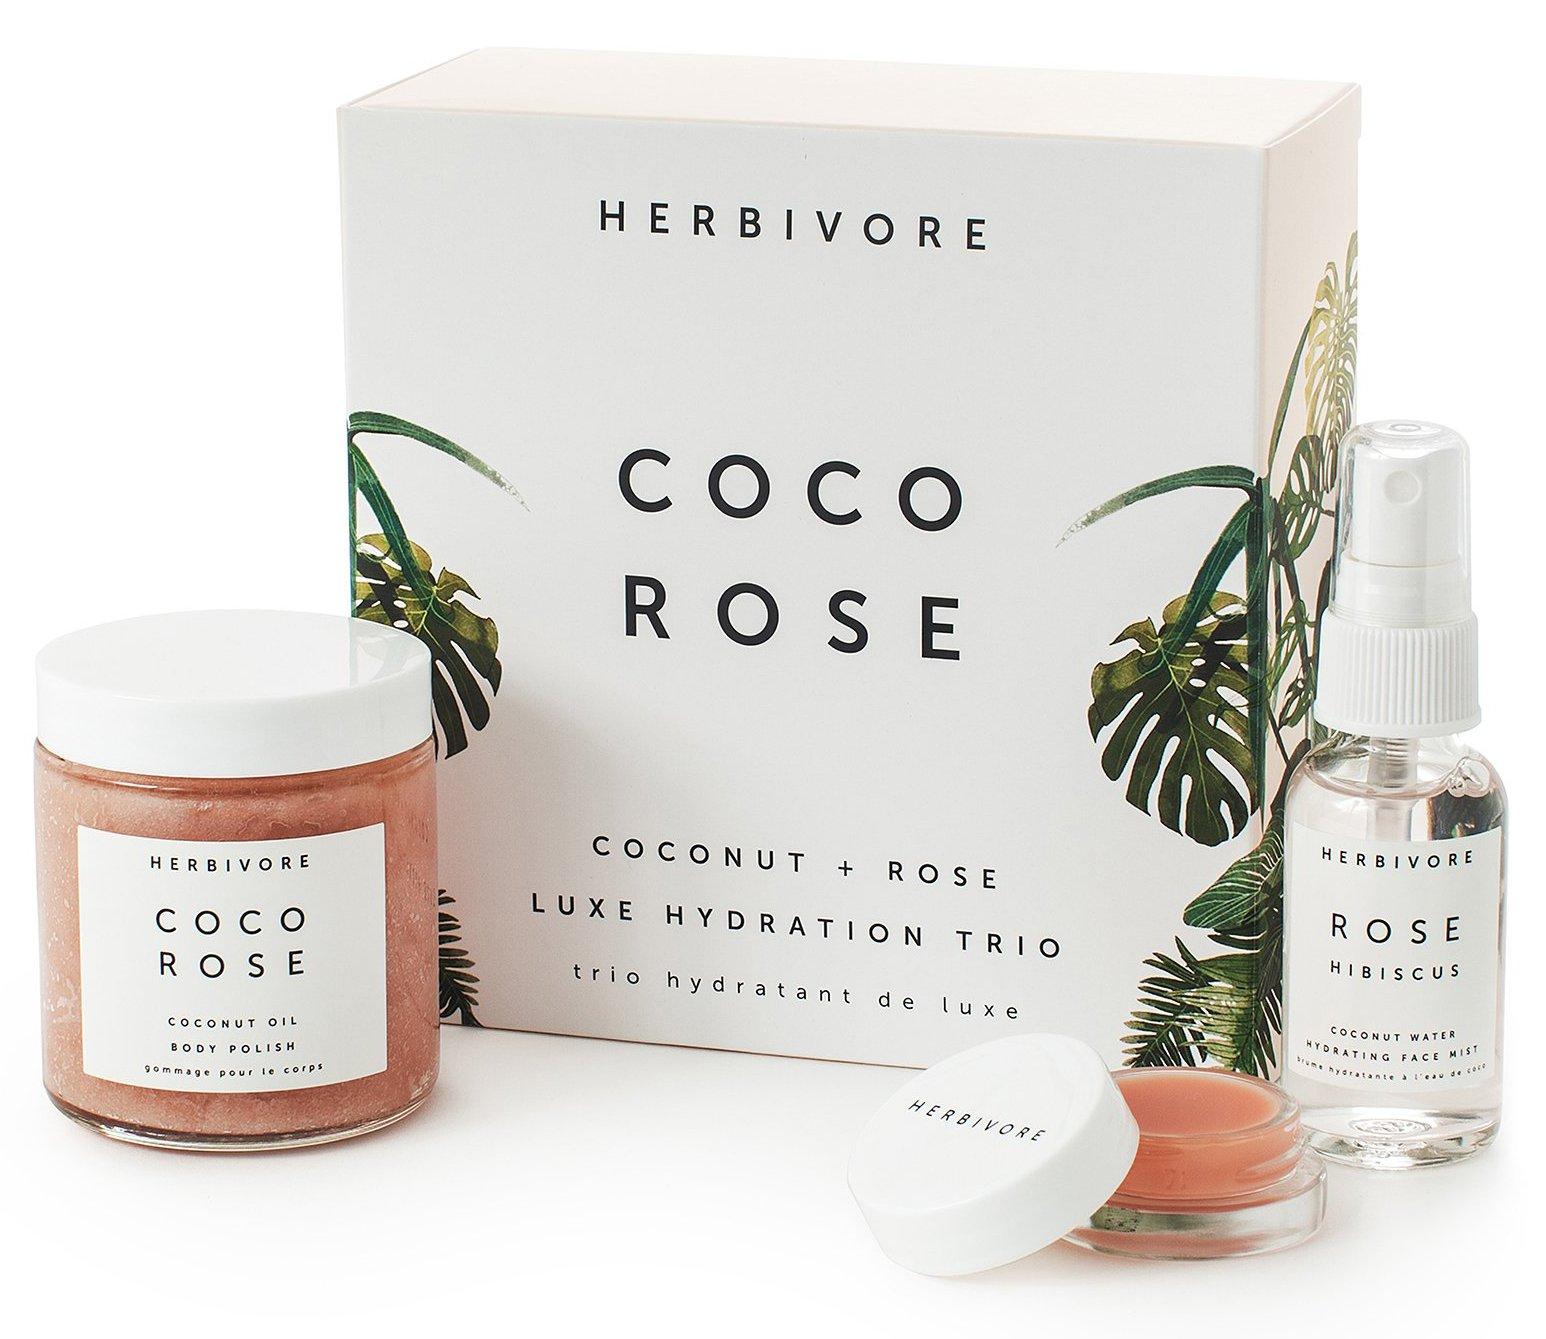 Herbivore Botanicals Herbivore Botanicals - All Natural Coco Rose Luxe Hydration Trio